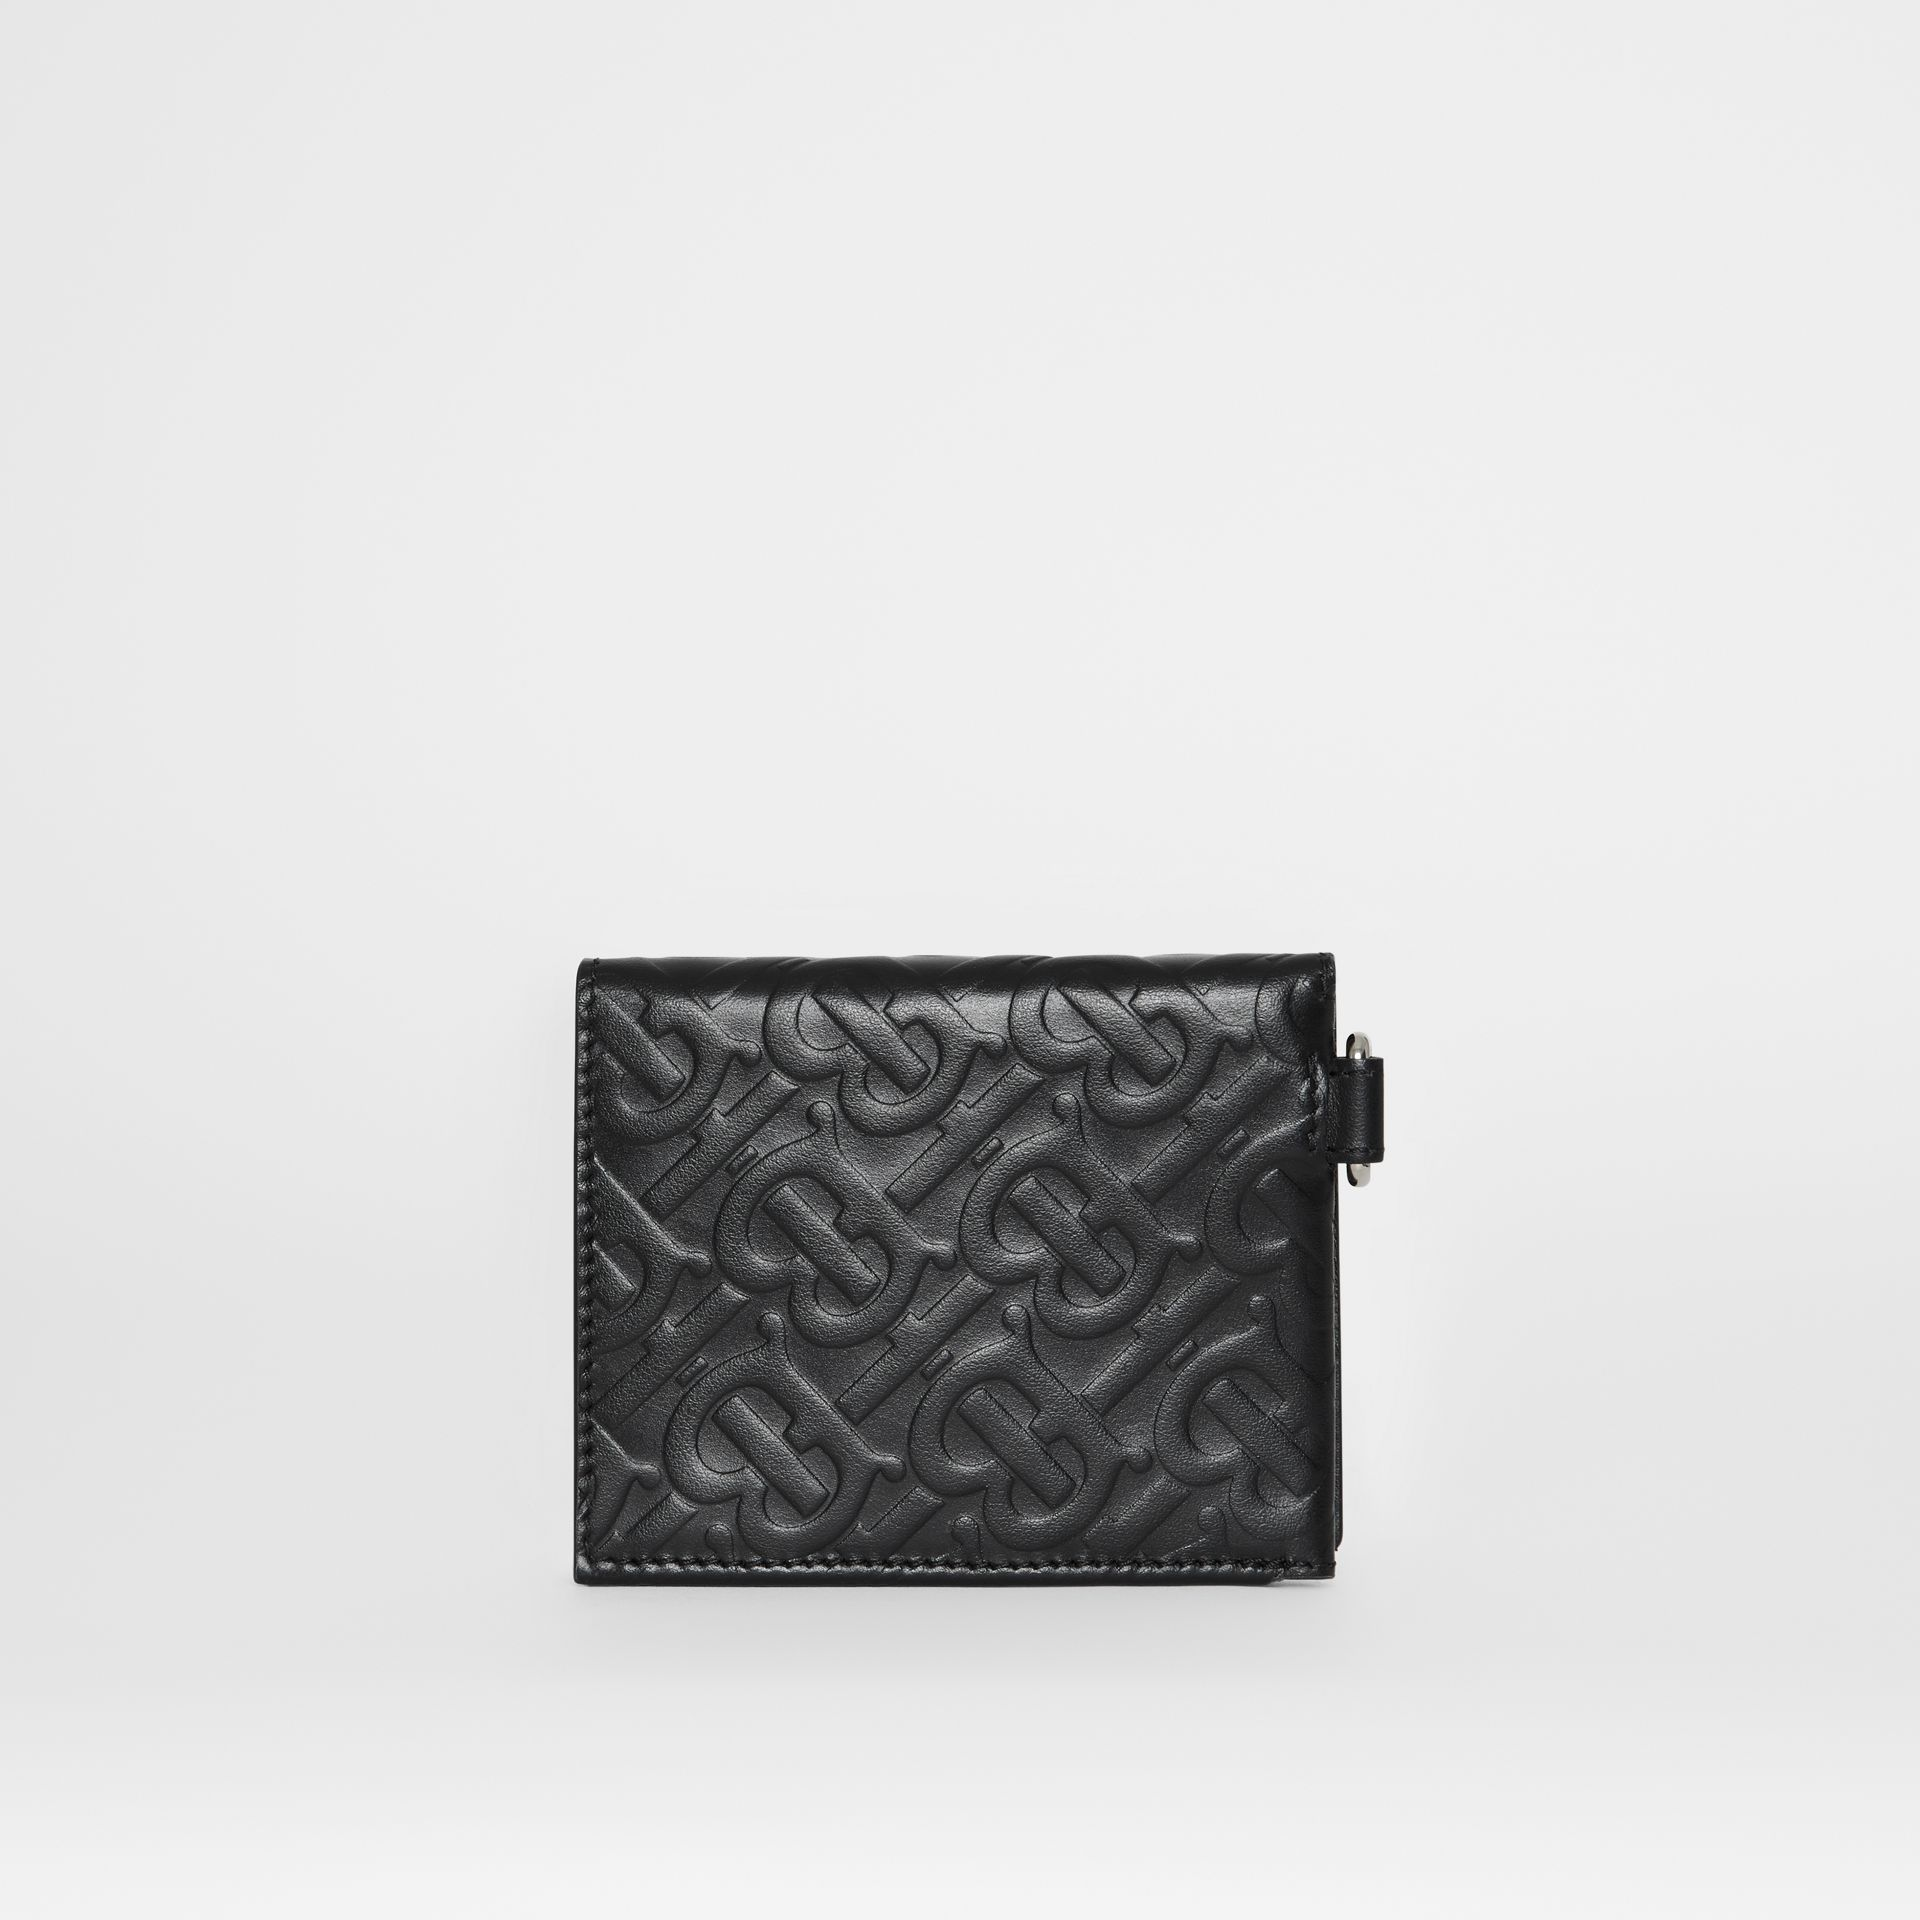 Monogram Embossed Leather Trifold Wallet in Black - Men | Burberry - gallery image 4